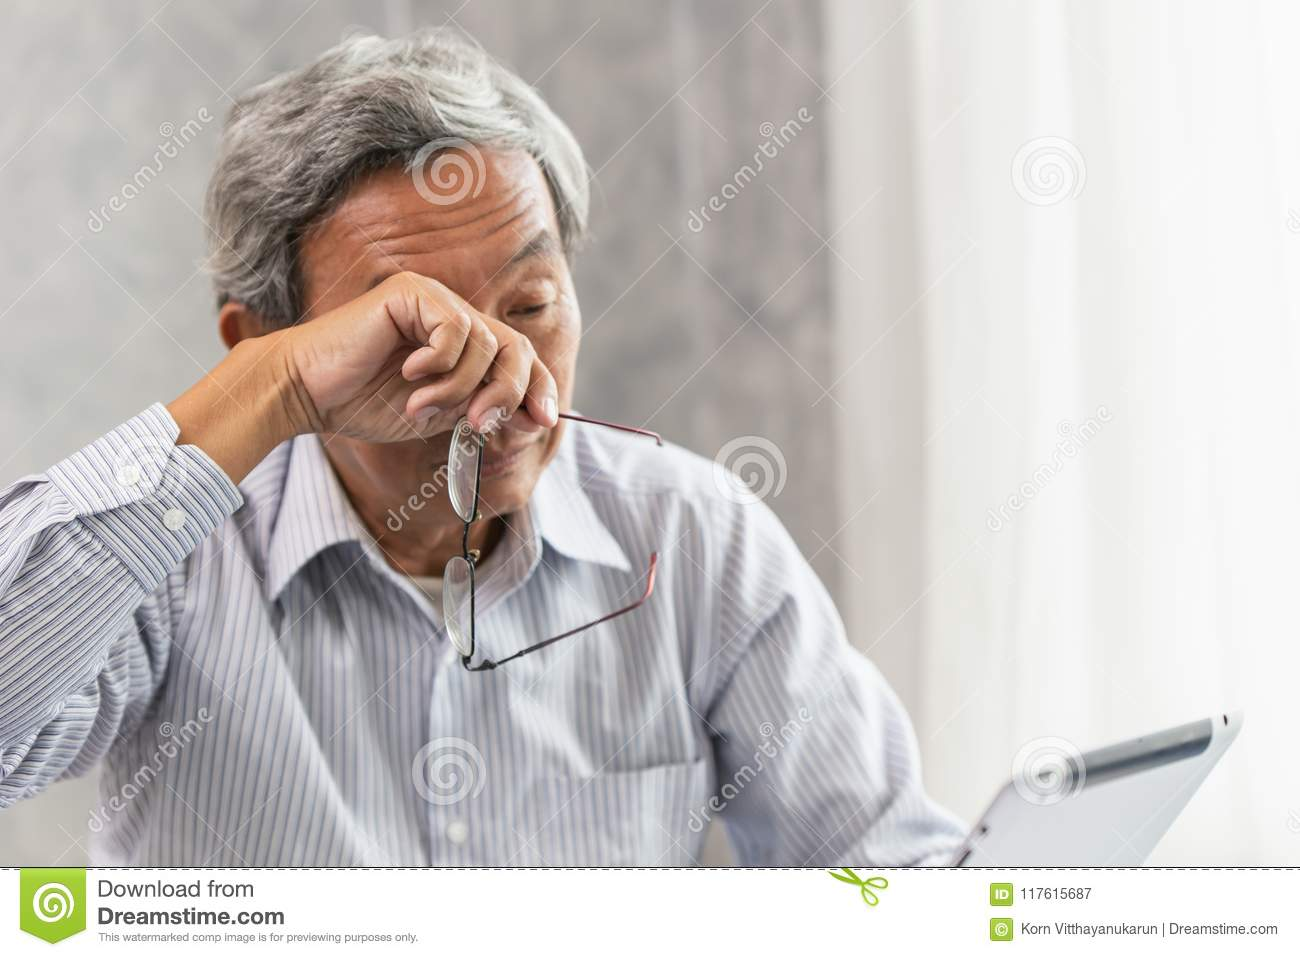 655eb8a2854 Asian elderly eye irritation problem fatigue and tired from hard work or  computer vision syndrome